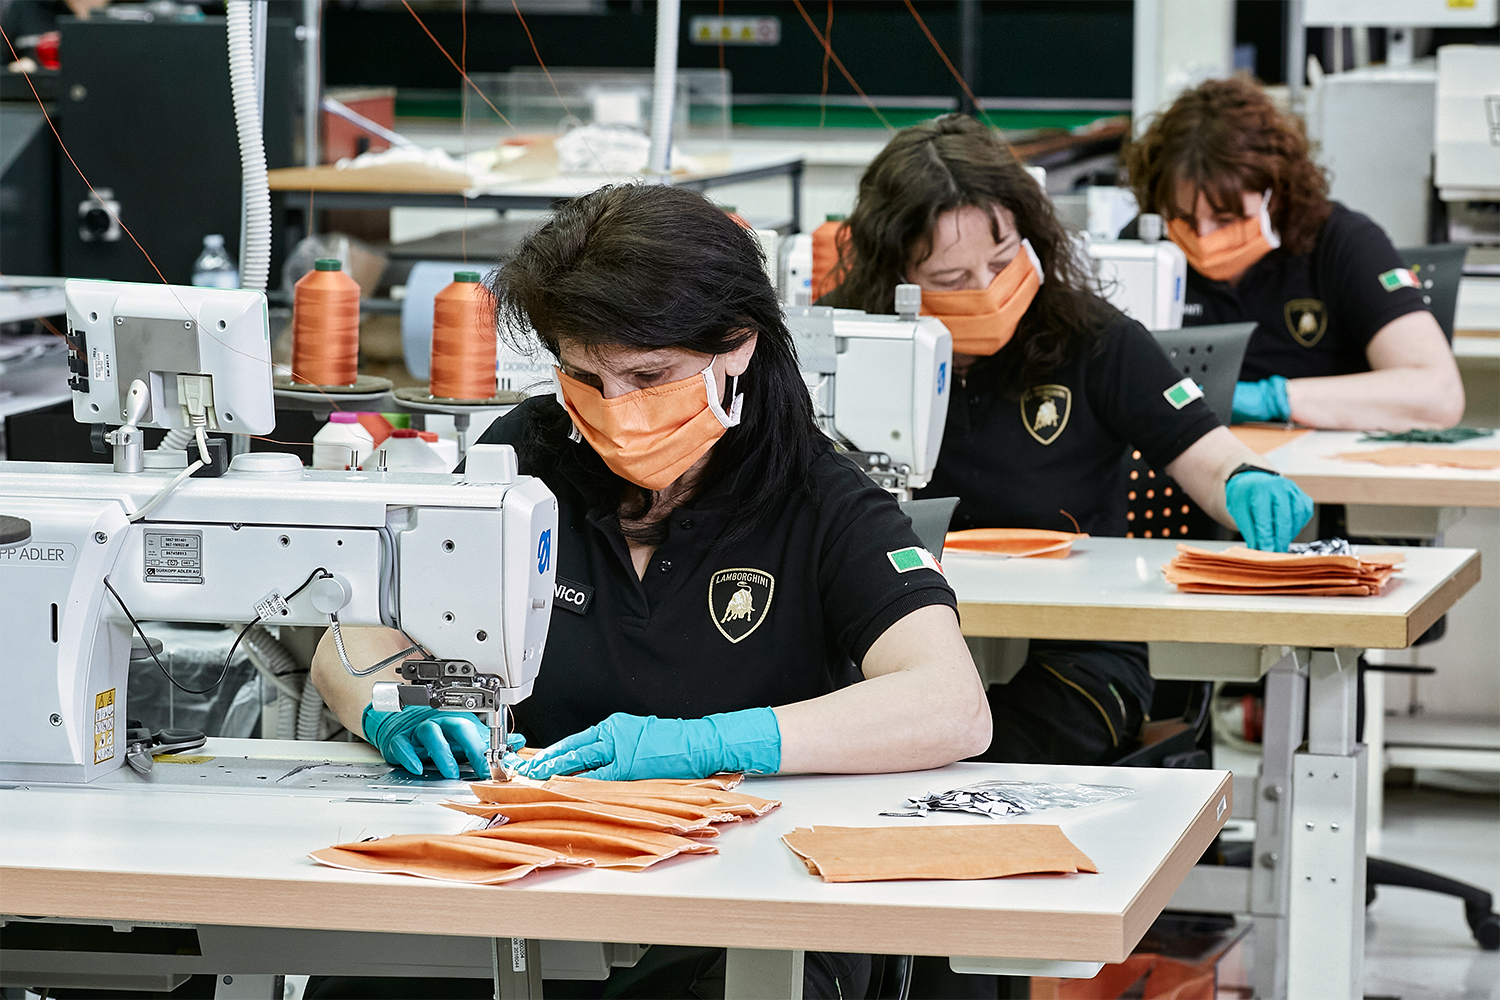 Lamborghini is making face masks and shields for medical workers